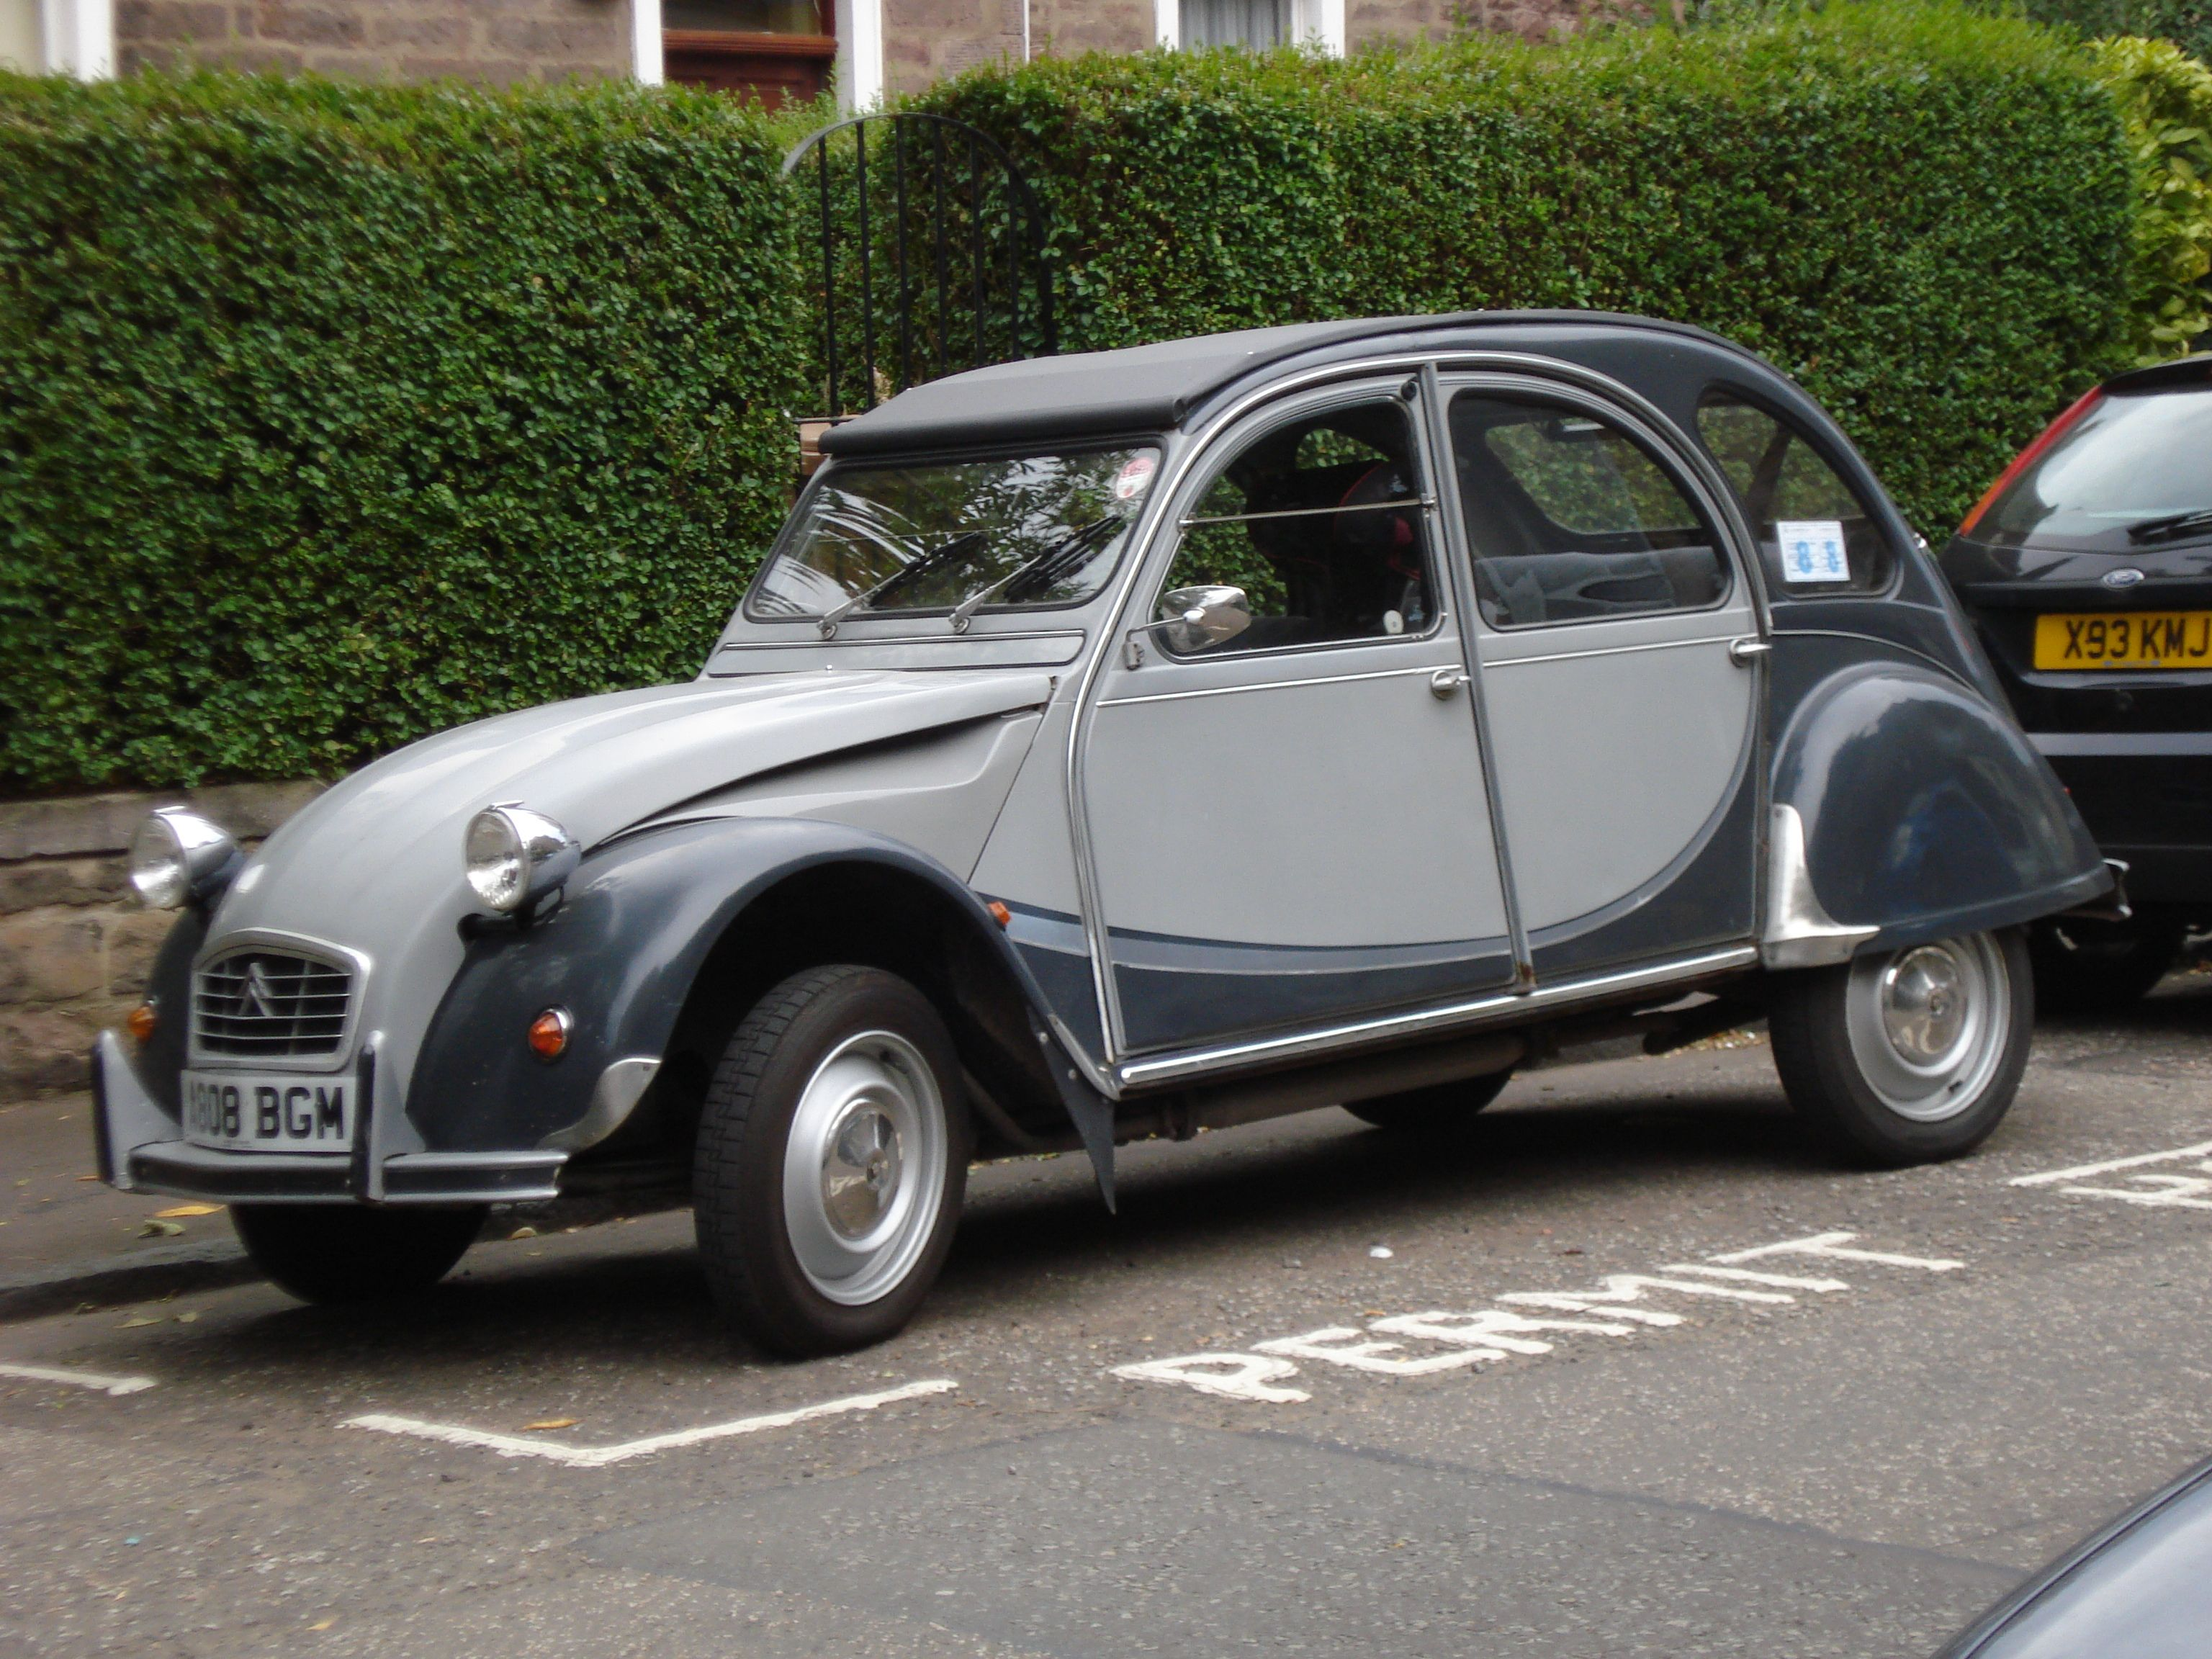 citroen 2 cv charleston grey scheme 2cv pinterest cars. Black Bedroom Furniture Sets. Home Design Ideas